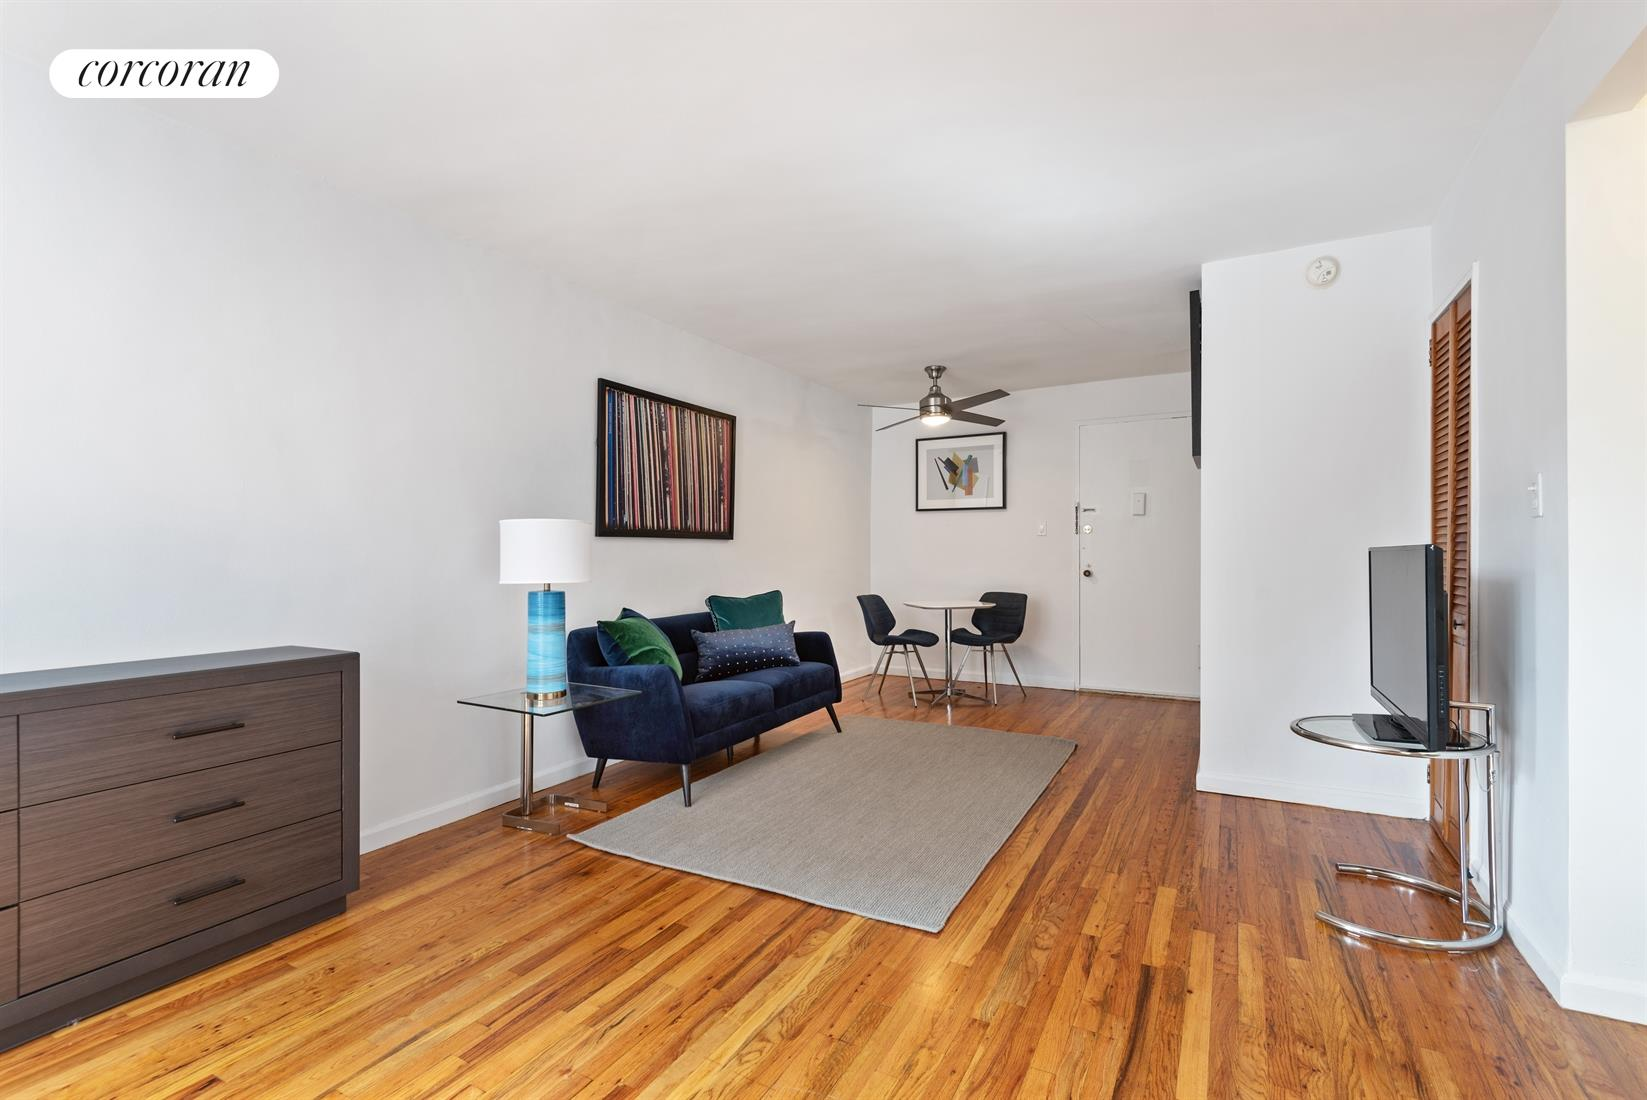 25-34 Crescent Street, 2F, Living Room